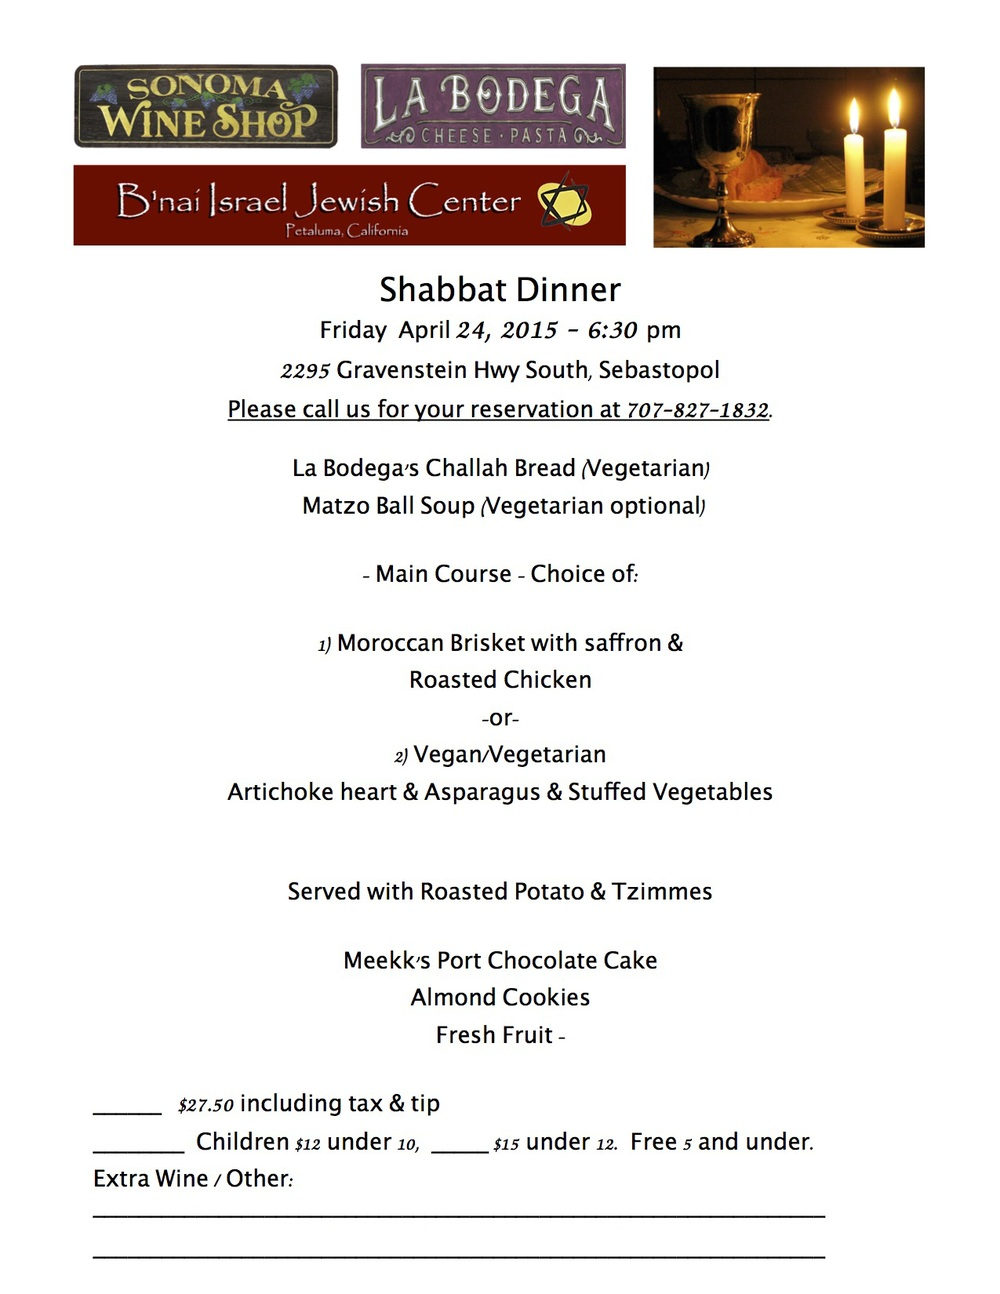 april 24 2015 shabbat dinner.jpg